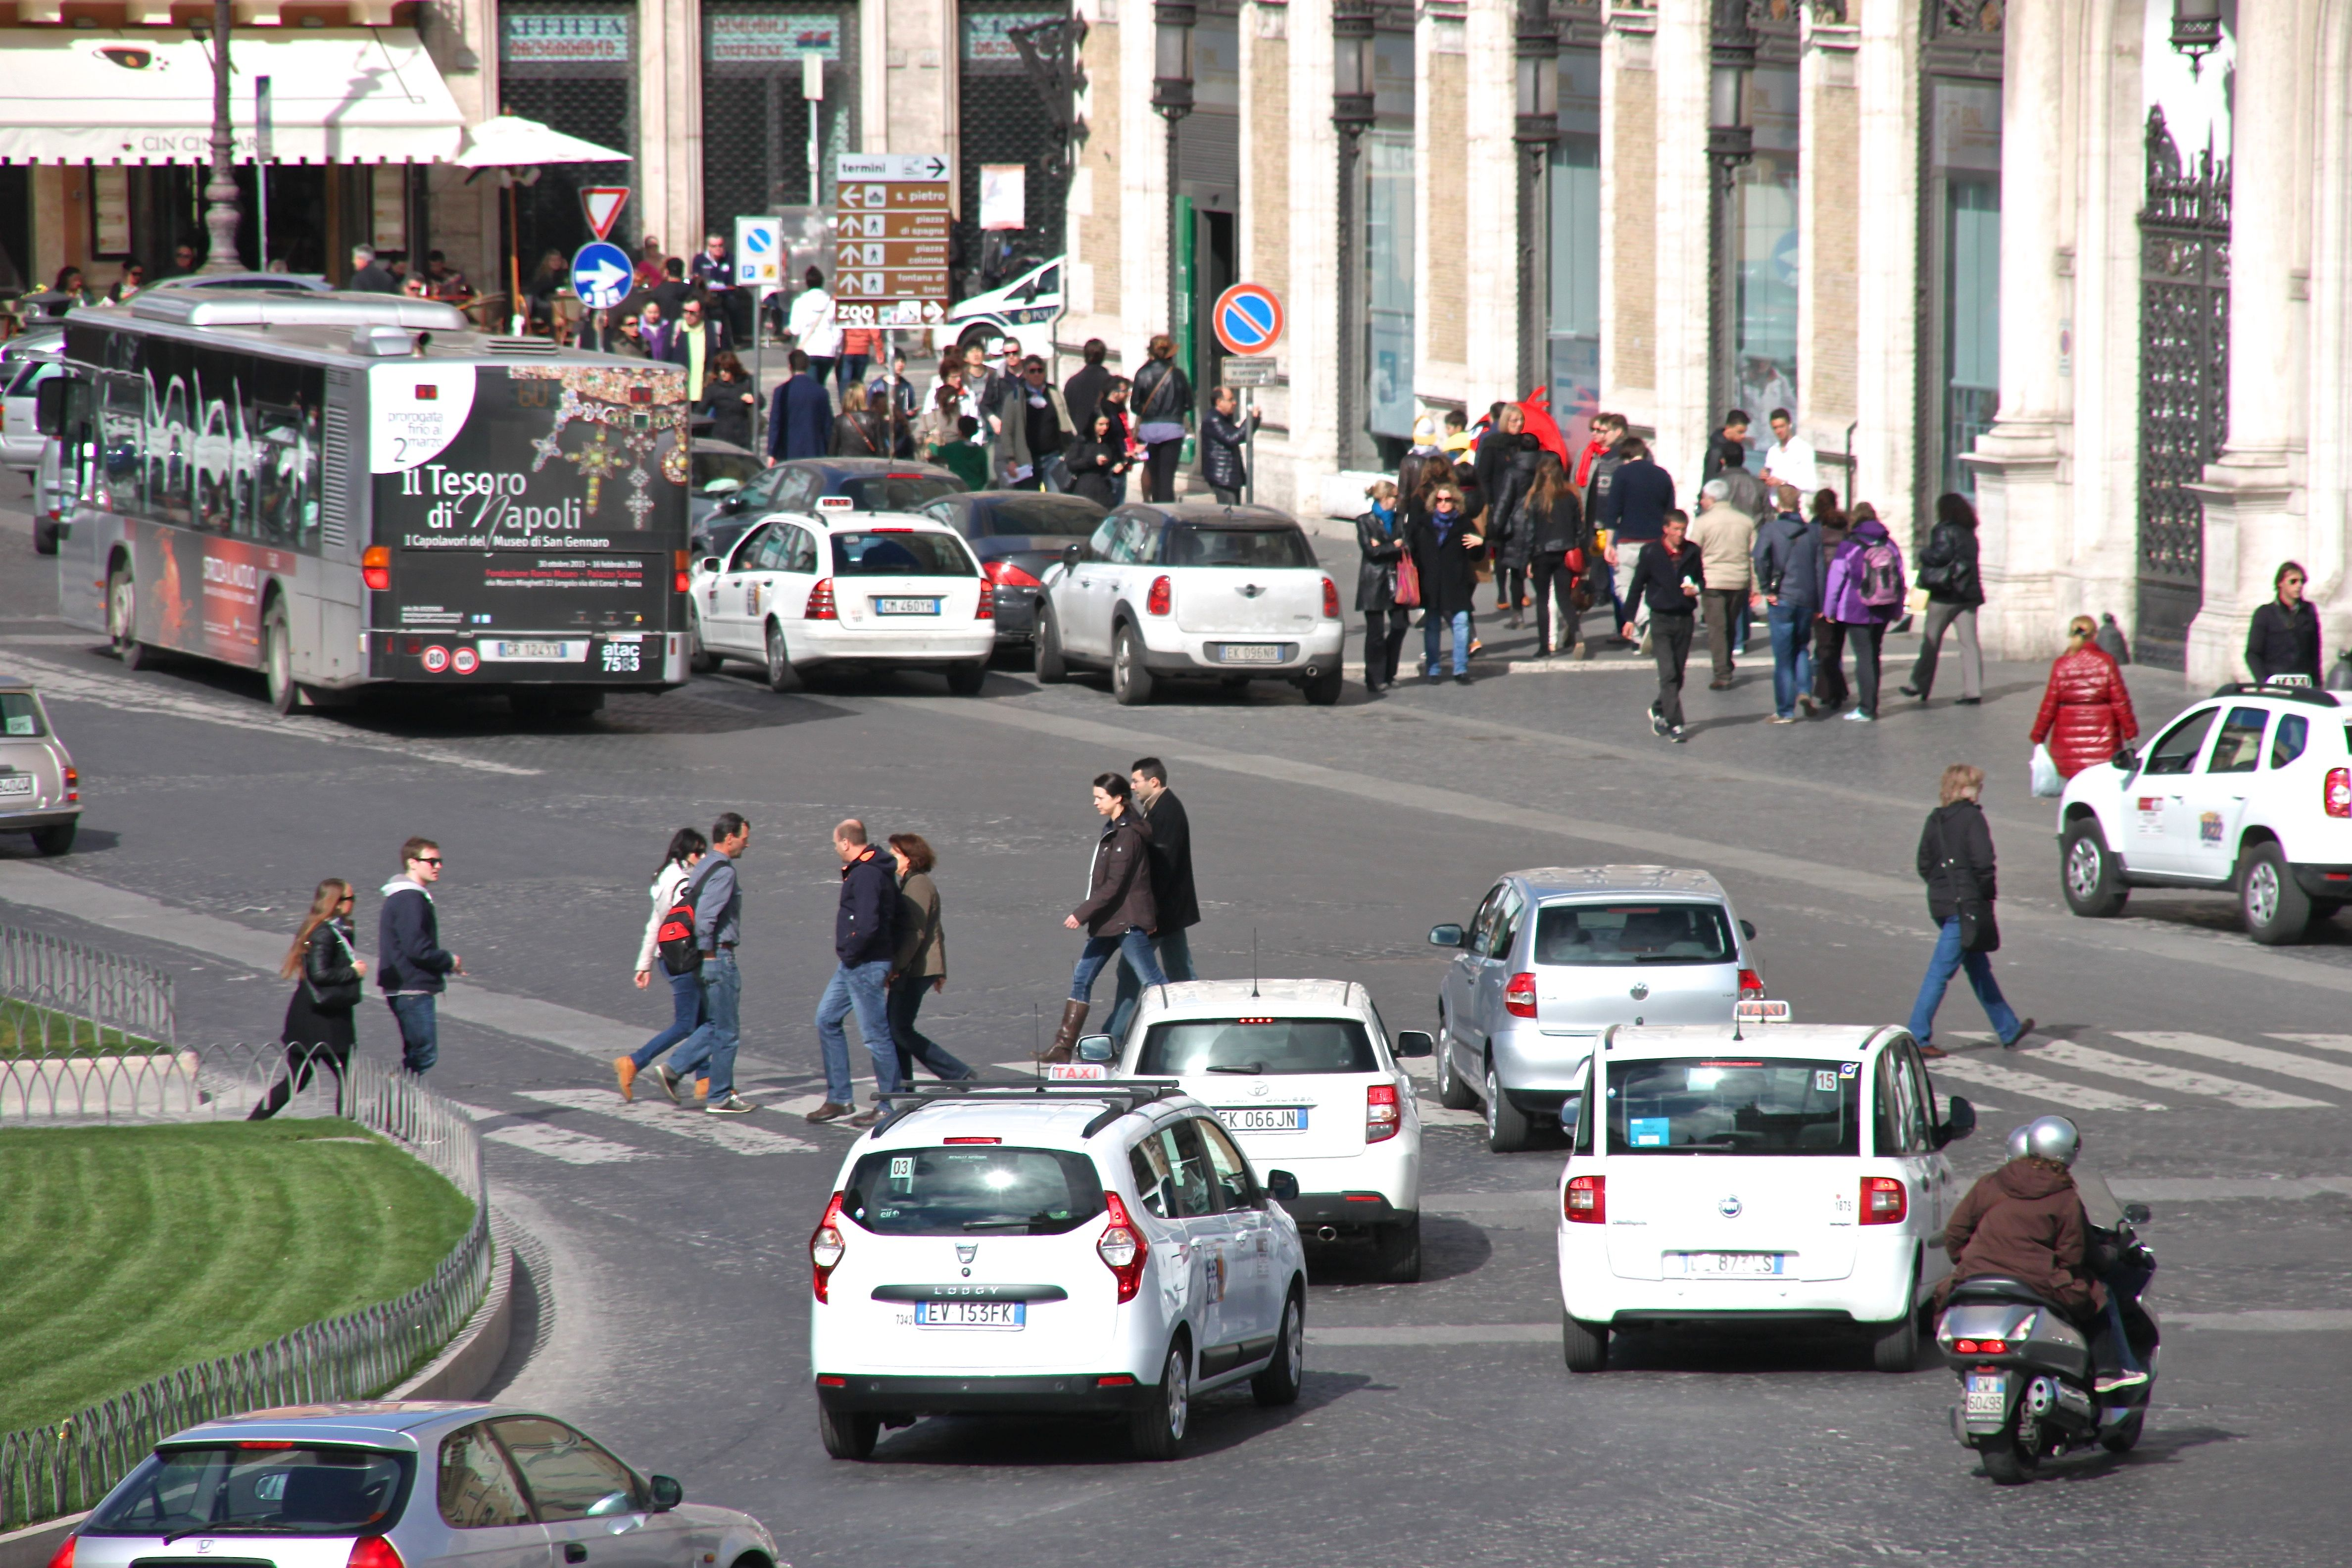 I suspect Rome's streets might be a little busier during the strike :o(